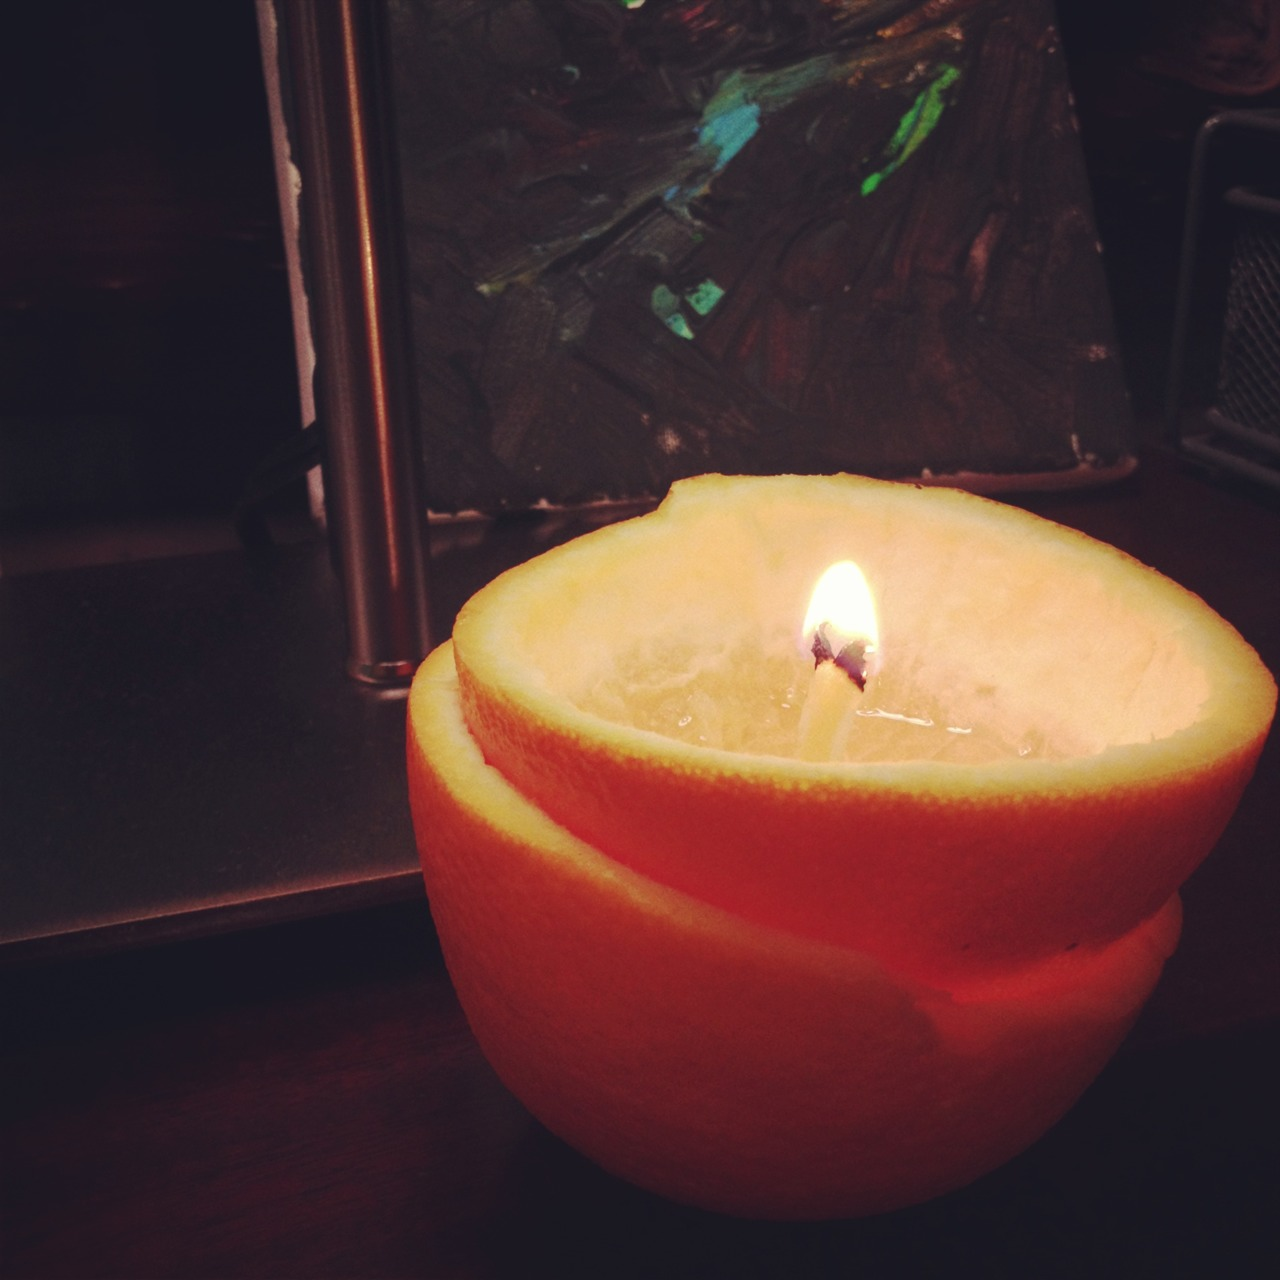 The next time your with out electricity make a candle out of an orange. It looks great, smells better, and gives off quite a bit of light.